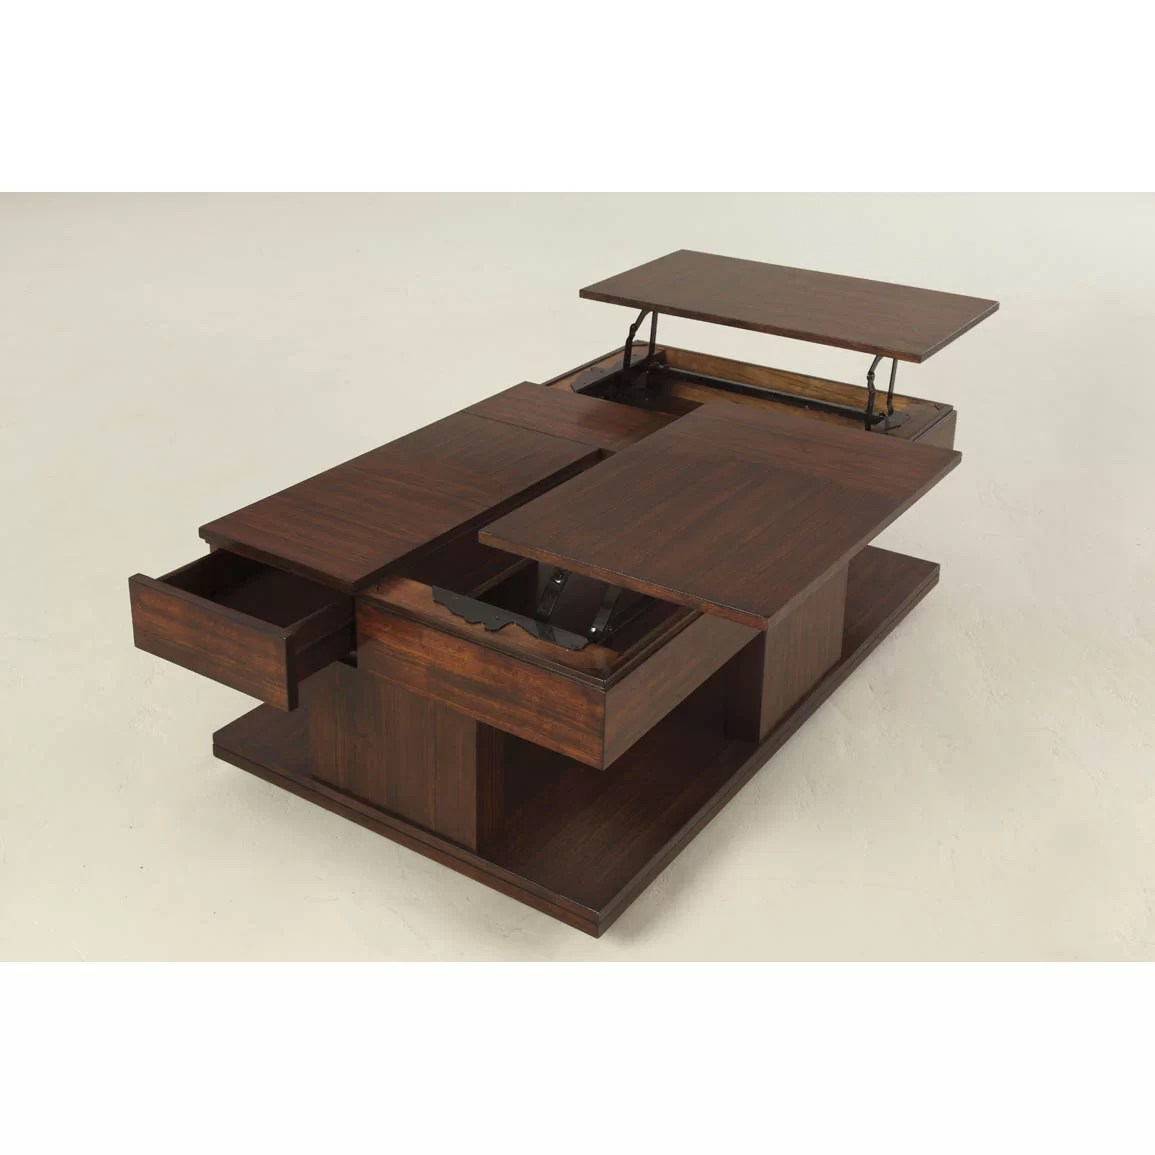 Darby Home Co Dail Coffee Table With Double Lift Top